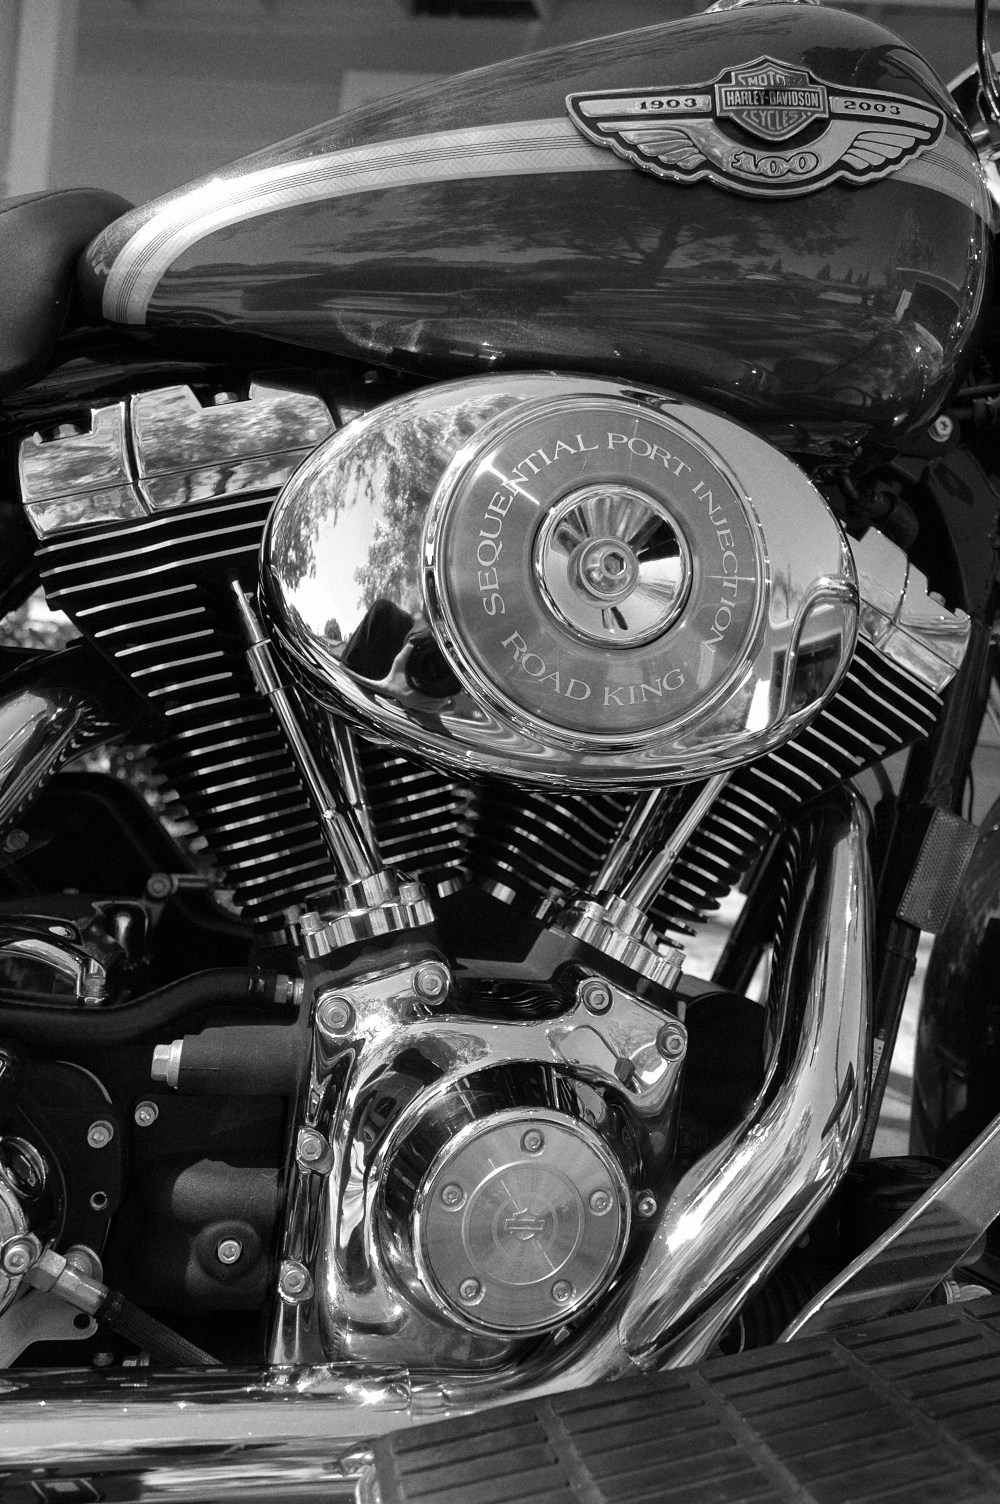 medium resolution of v twin engine wikipedia motorcycle v twin engine diagram